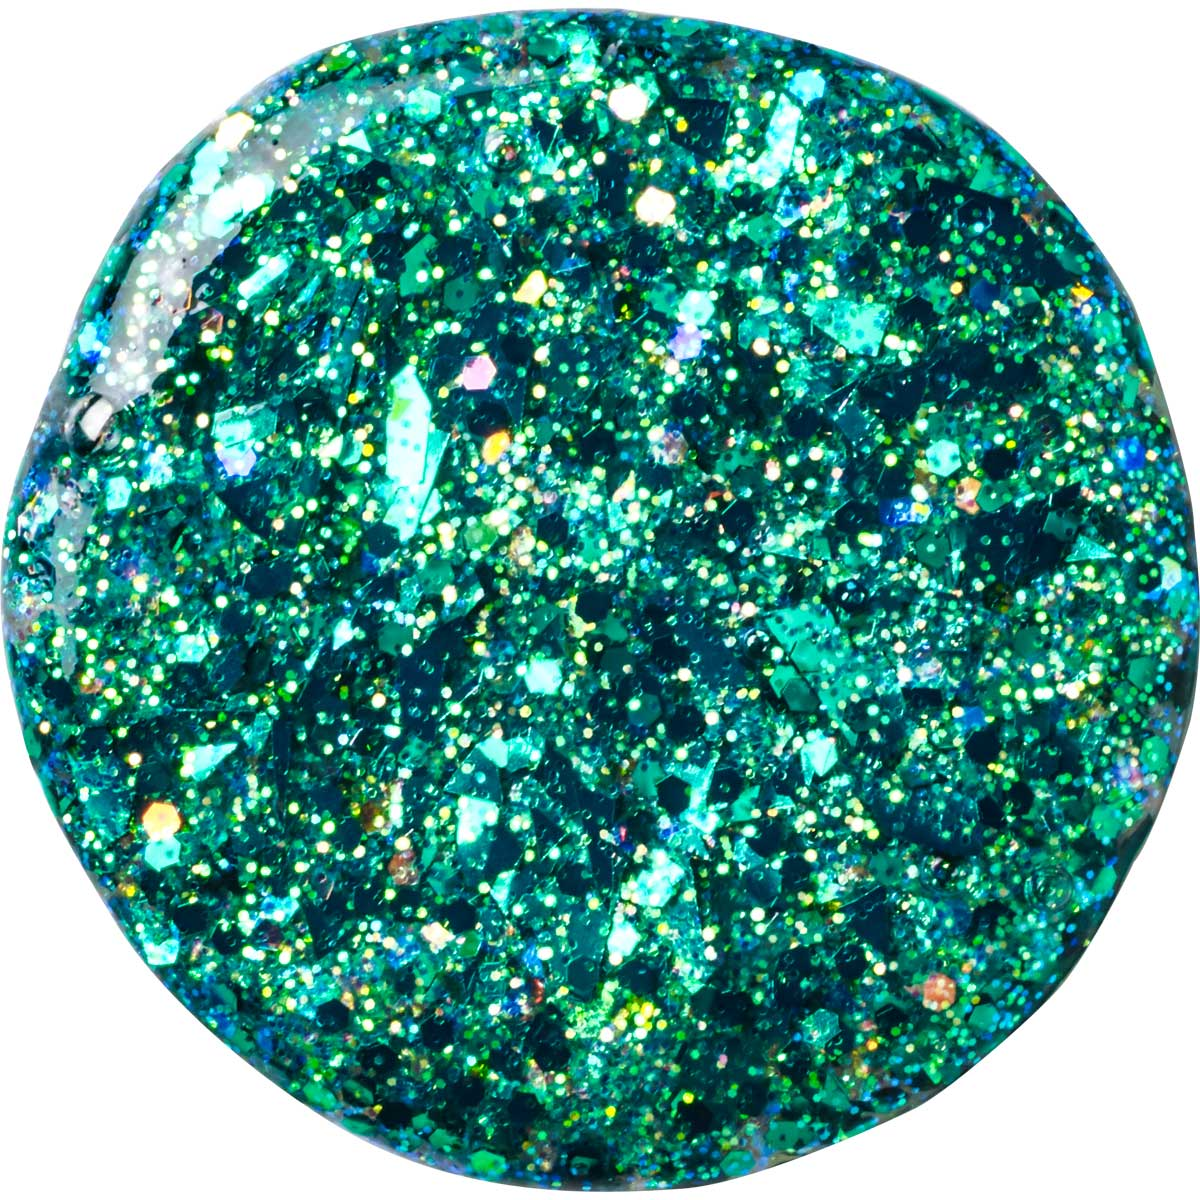 FolkArt ® Glitterific™ Acrylic Paint - Evergreen, 2 oz.